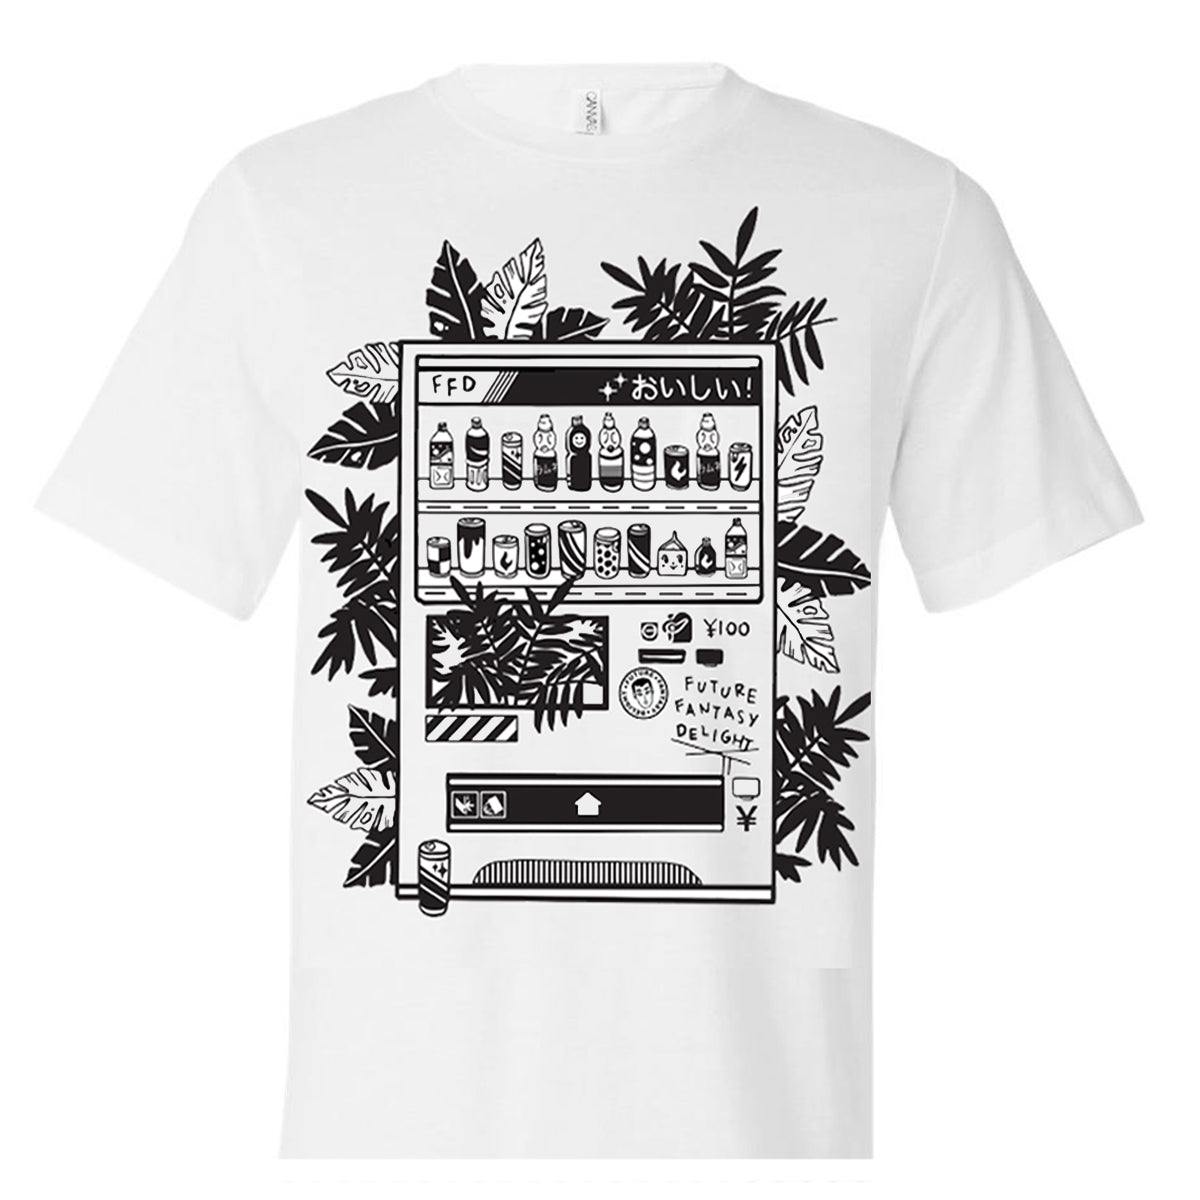 FFD OISHI Vending Machine Tee